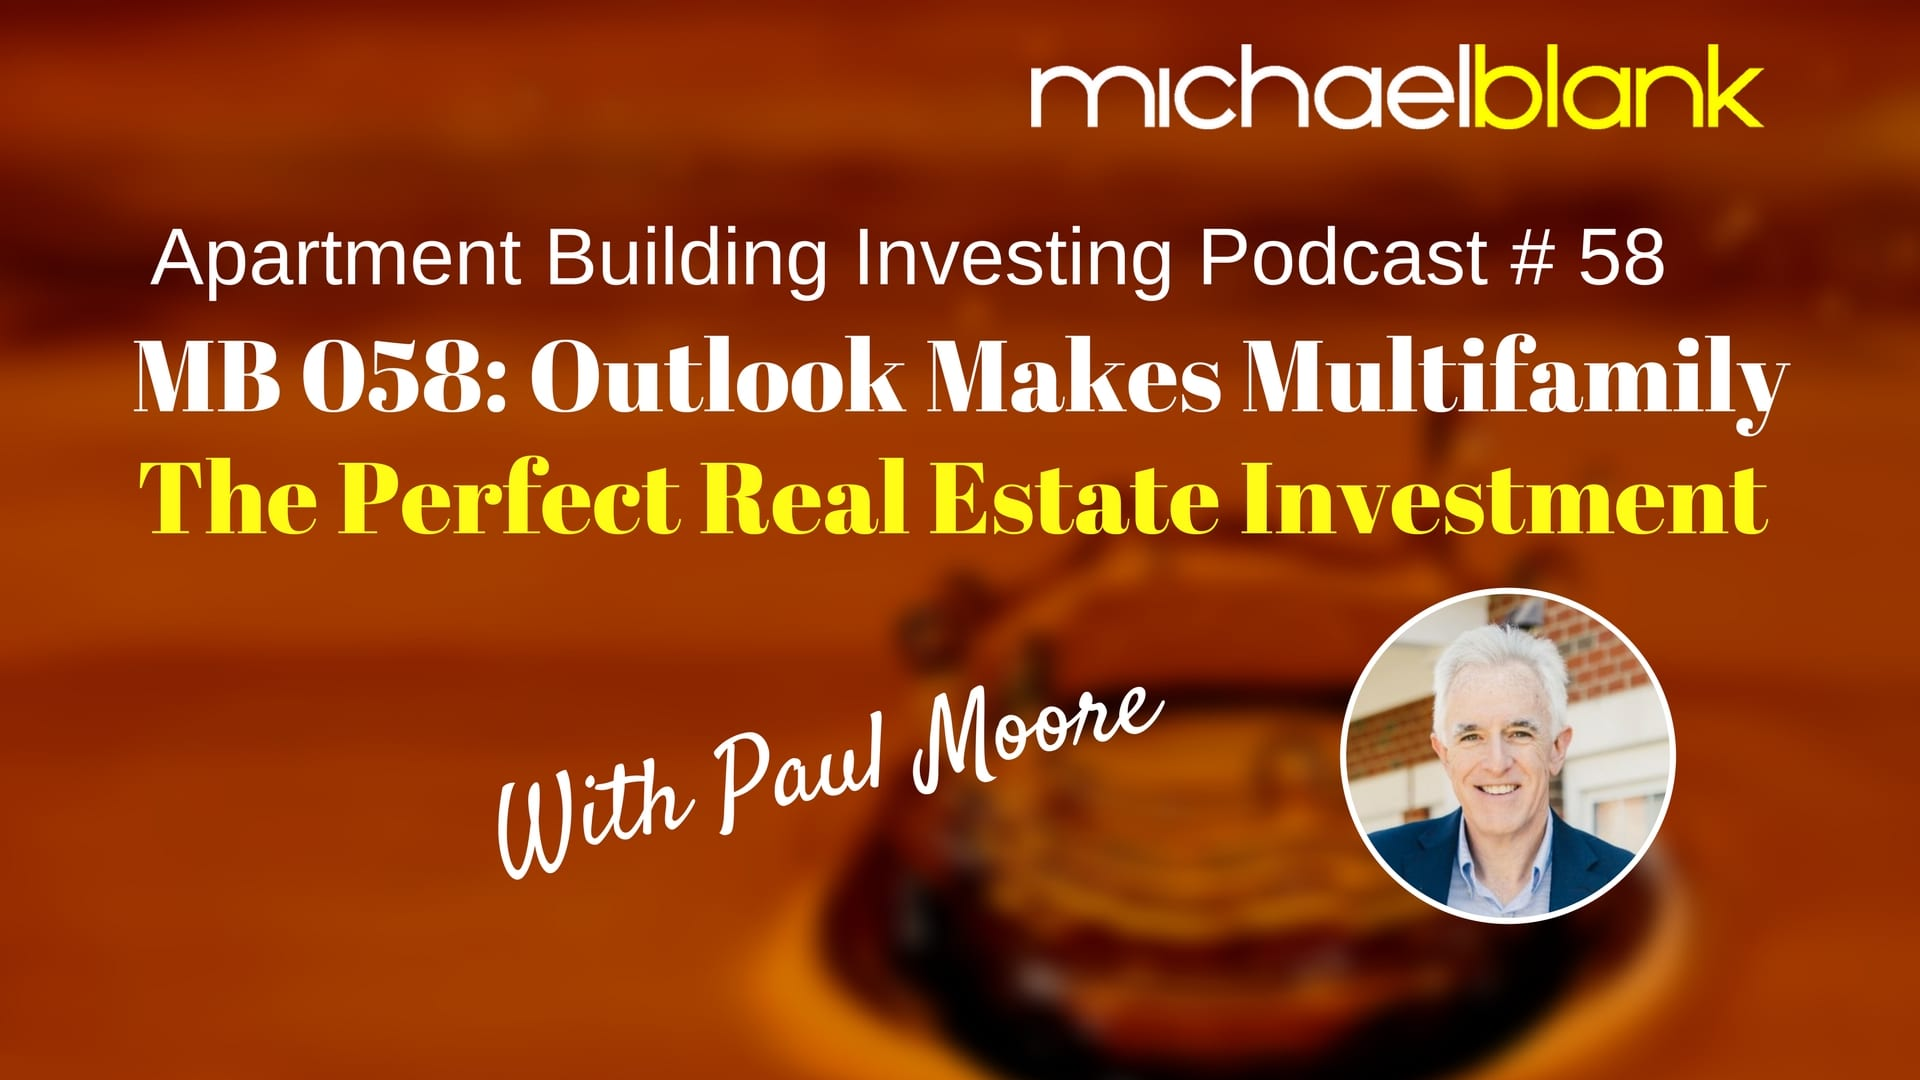 MB 058: Outlook Makes Multifamily the Perfect Real Estate Investment – With Paul Moore